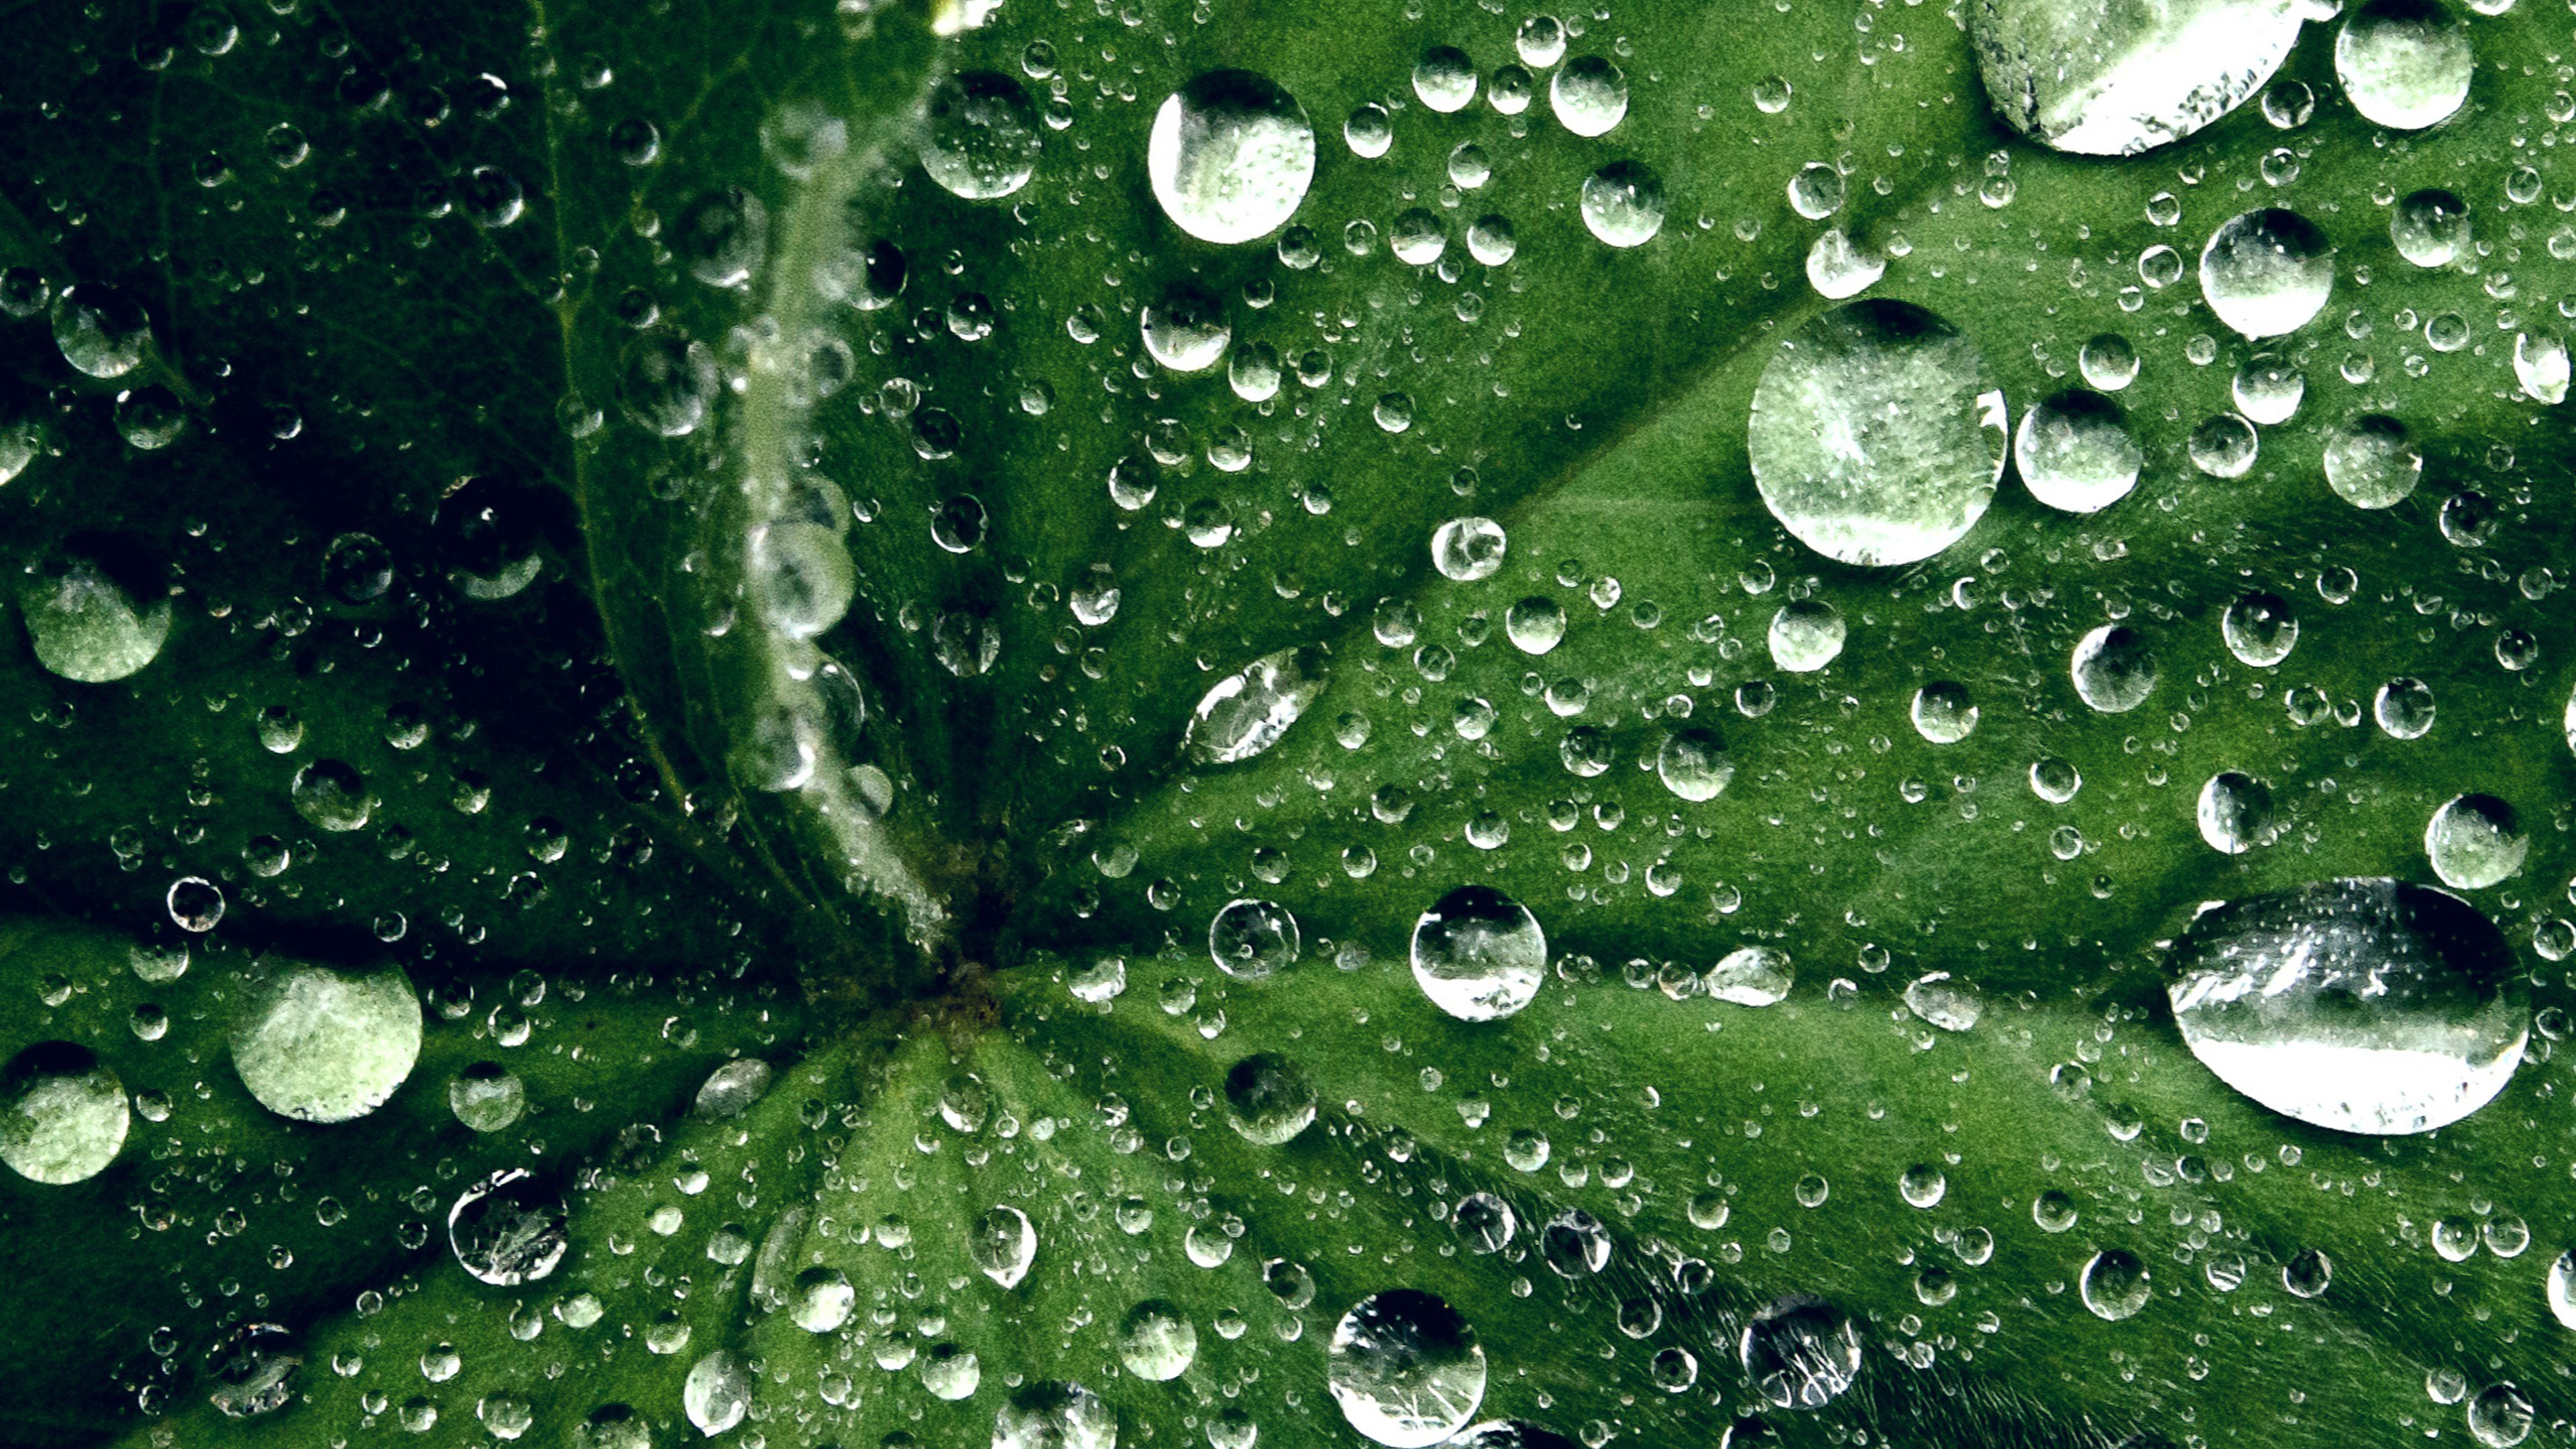 my46-water-drop-on-leaf-summer-green-live-wallpaper